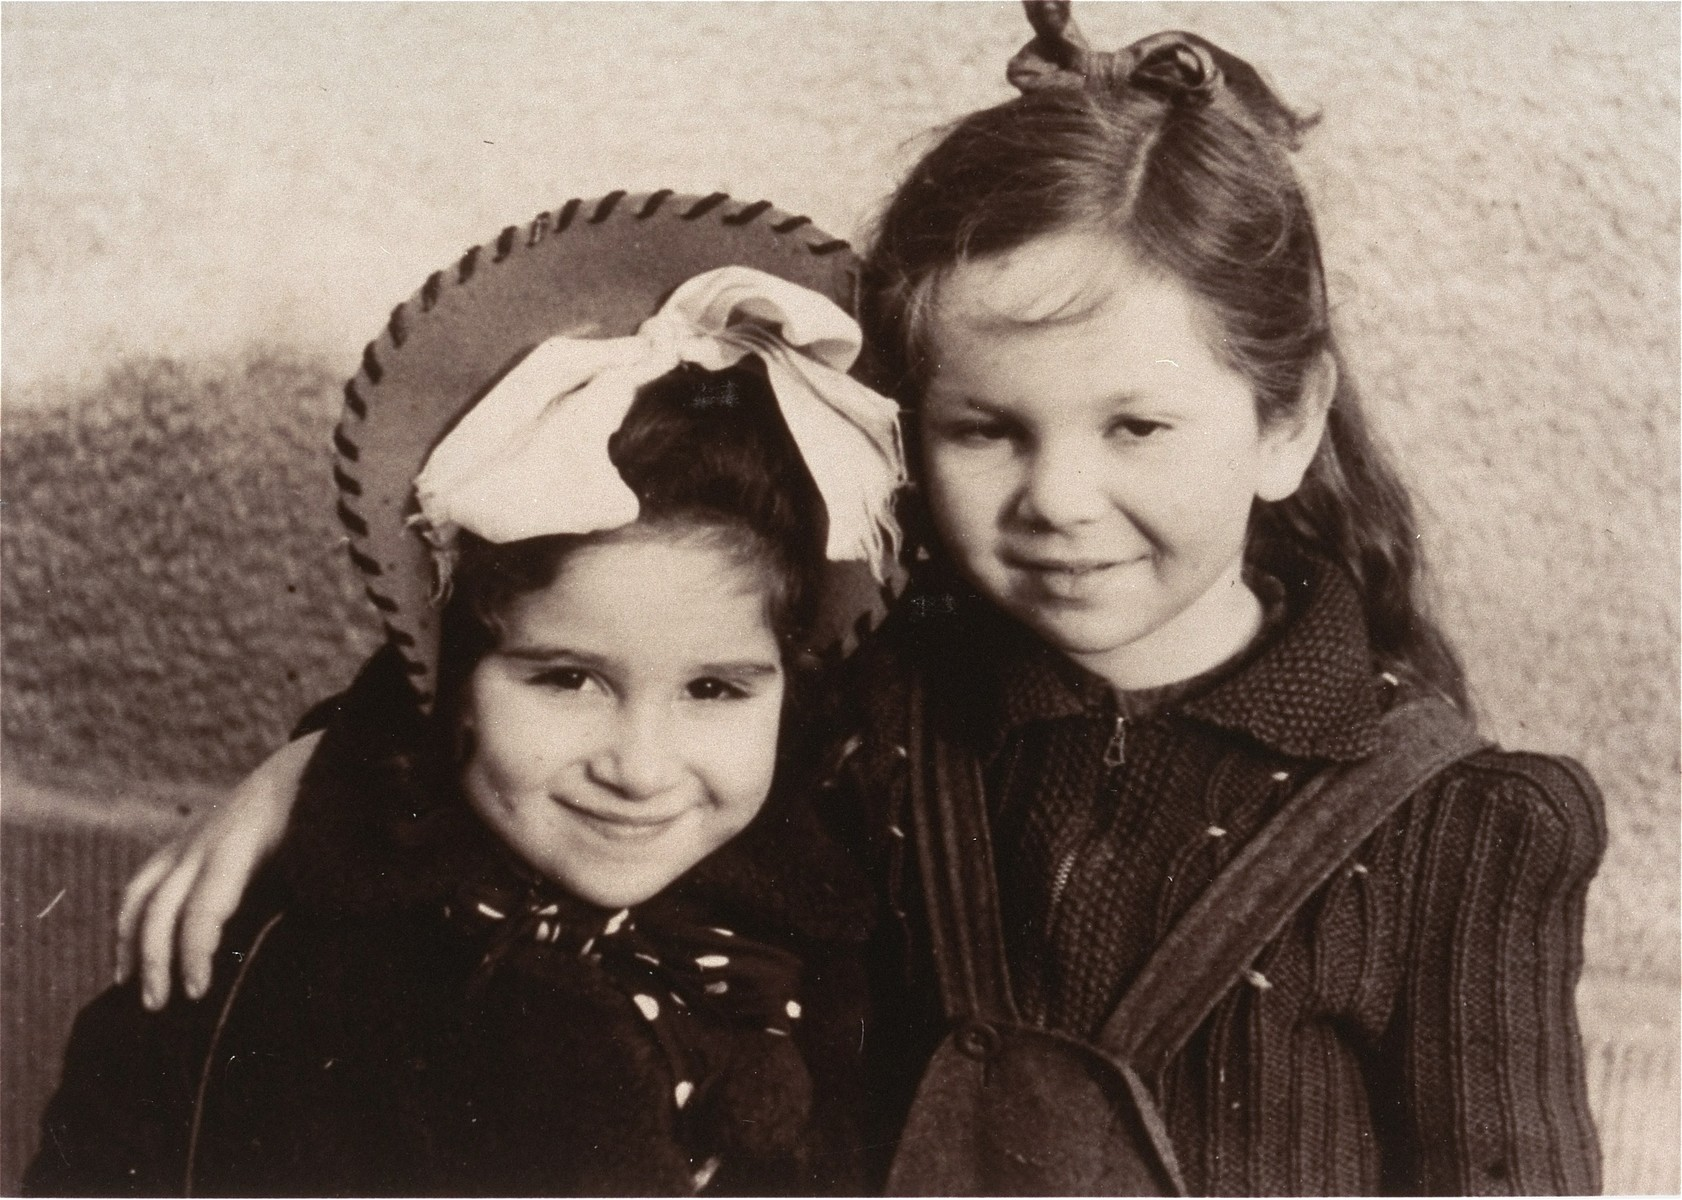 Henia Wisgardisky (right) with her cousin, Bluma Berk (left).